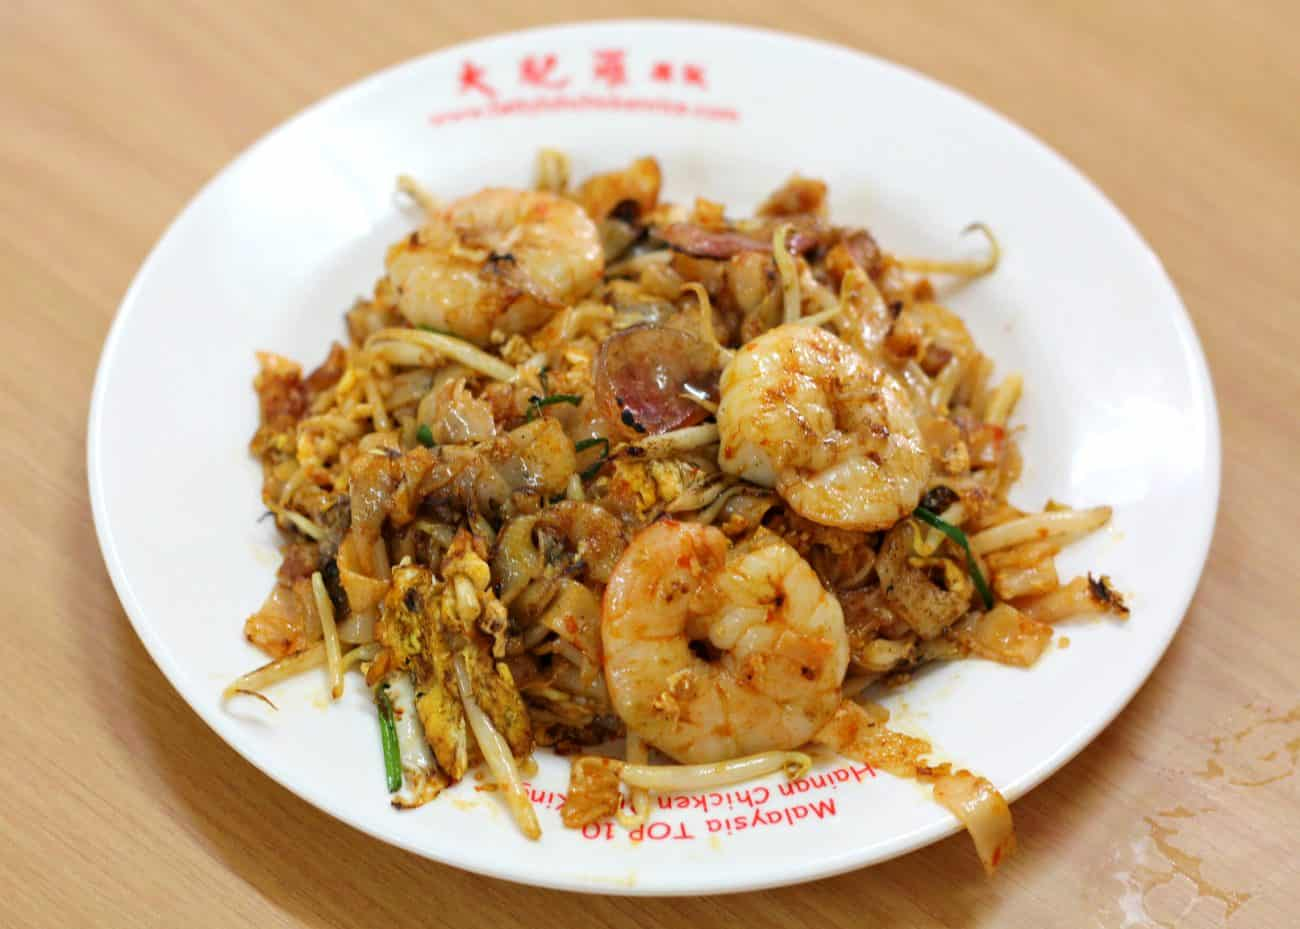 M'sian Sparks Debate Over Wet Versus Dry Char Kuey Teow on Social Media - WORLD OF BUZZ